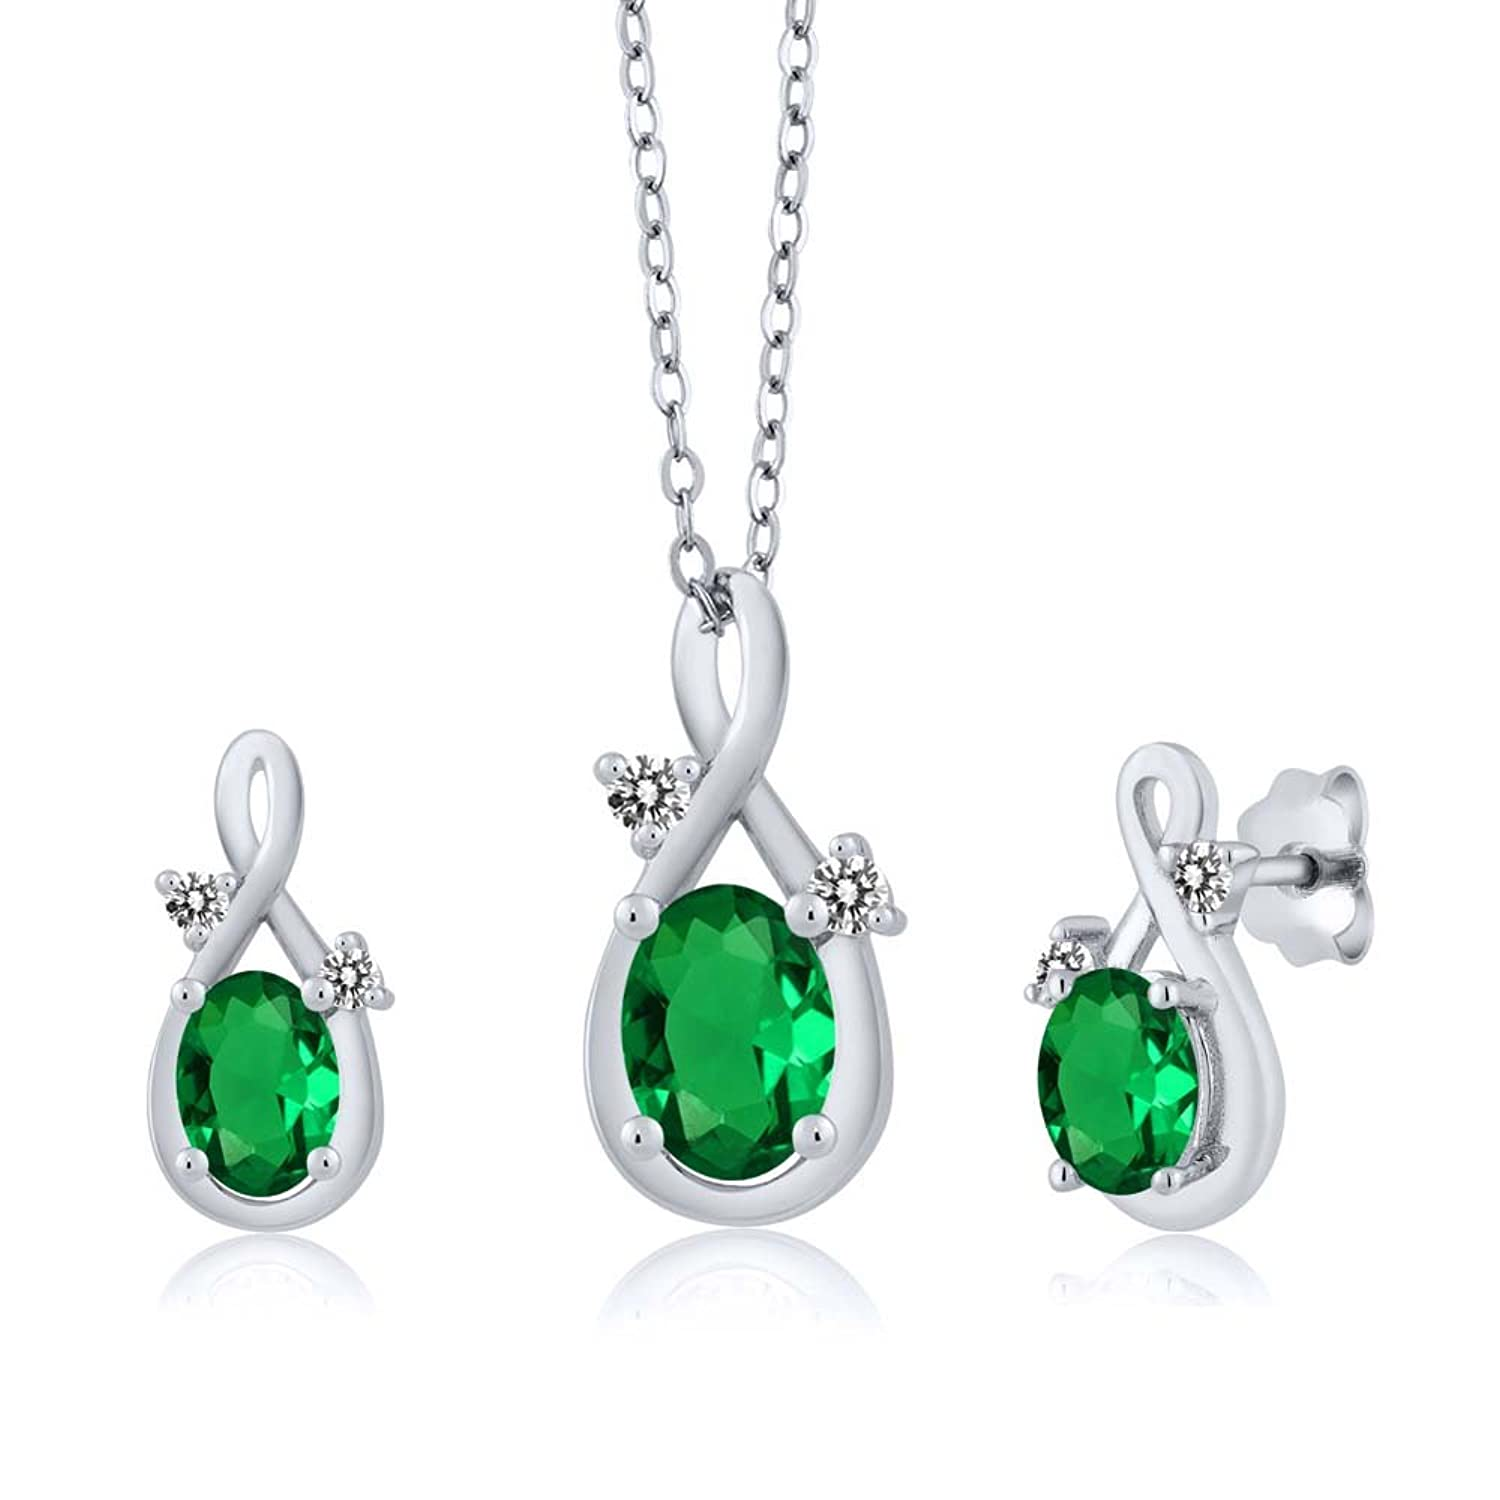 1.50 Ct Oval Green Simulated Emerald 18K White Gold Pendant Earrings Set